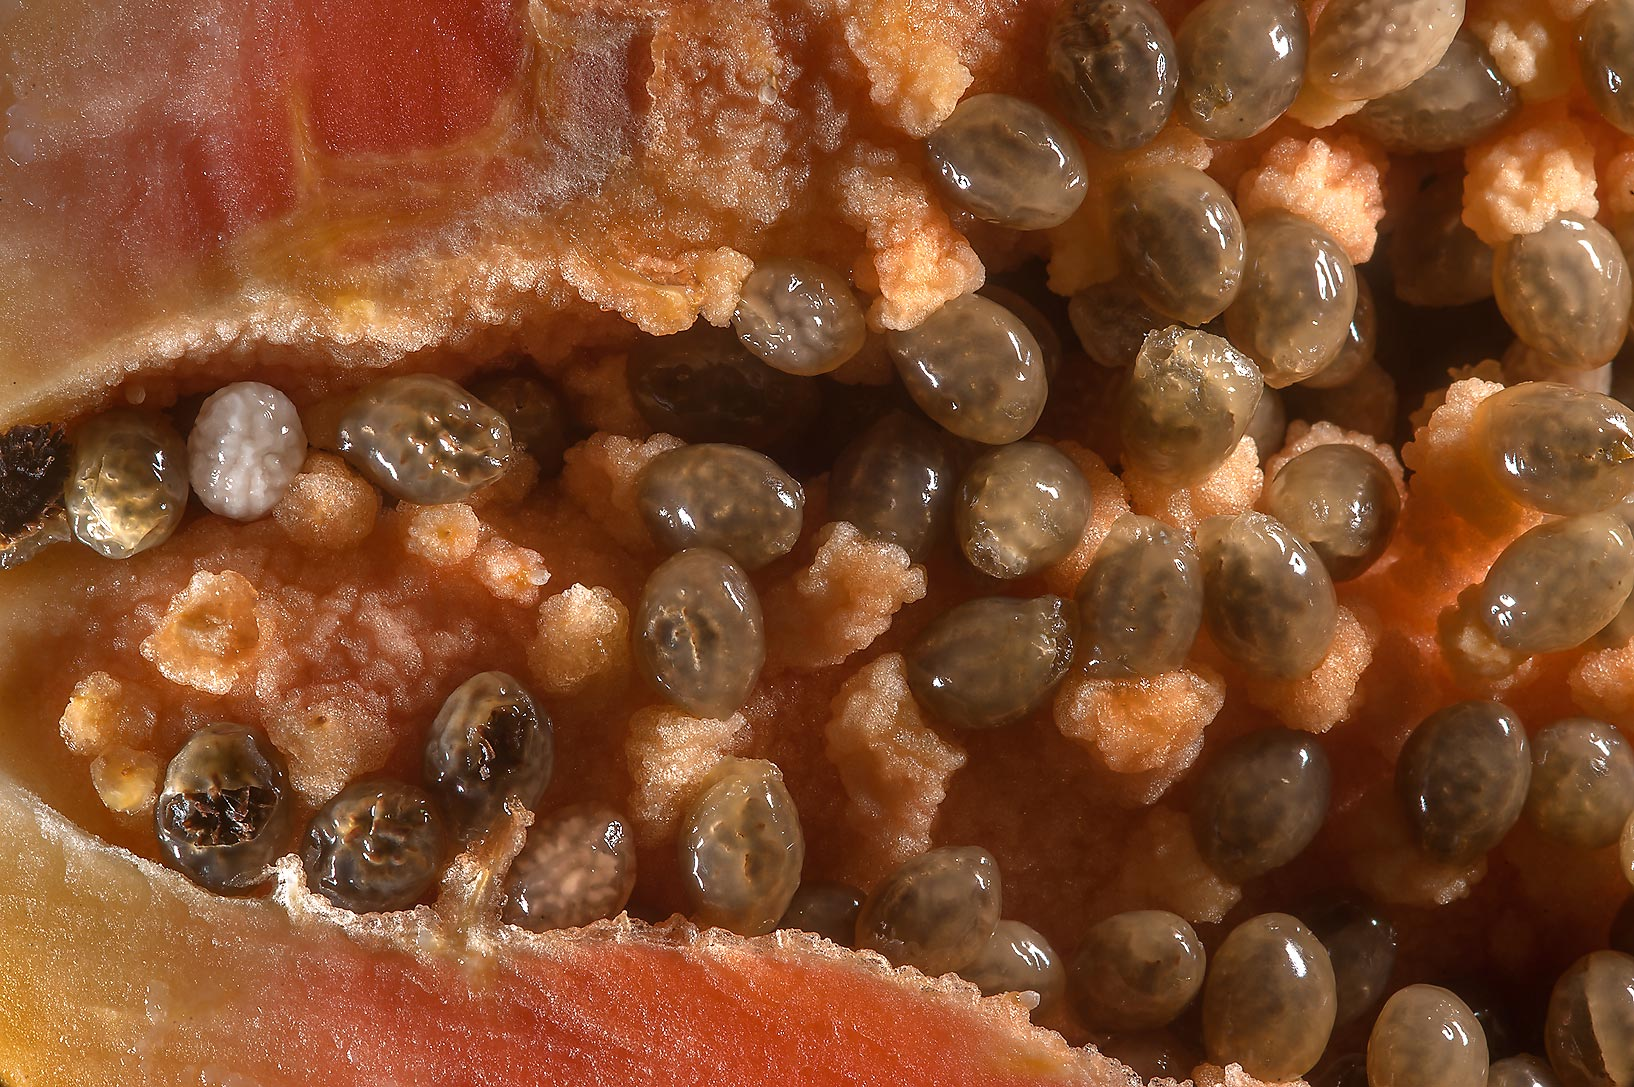 Seeds in a cross section of a fruit of Carica...Carrefour Supermarket. Doha, Qatar